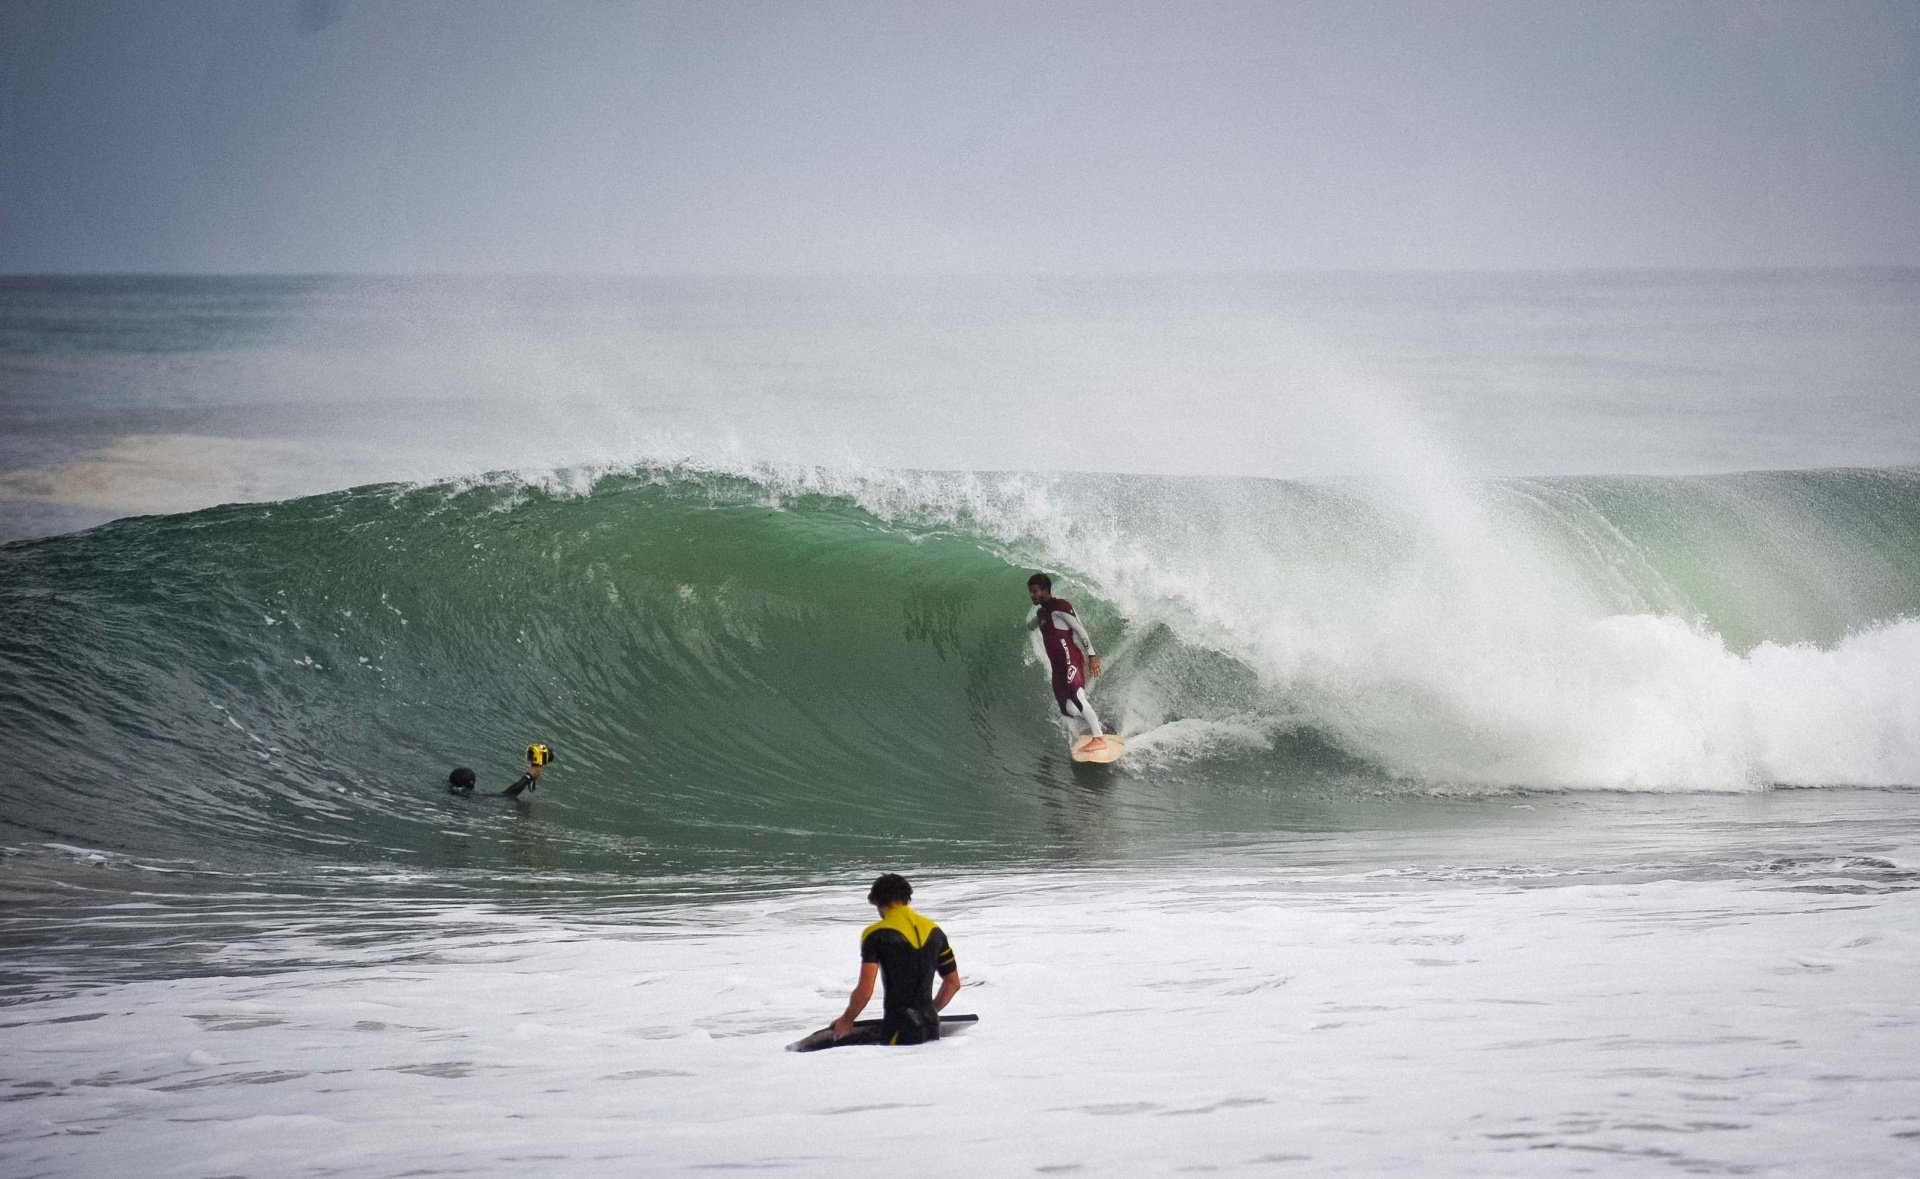 Johannes Stengel's photo of Hossegor (La Graviere)